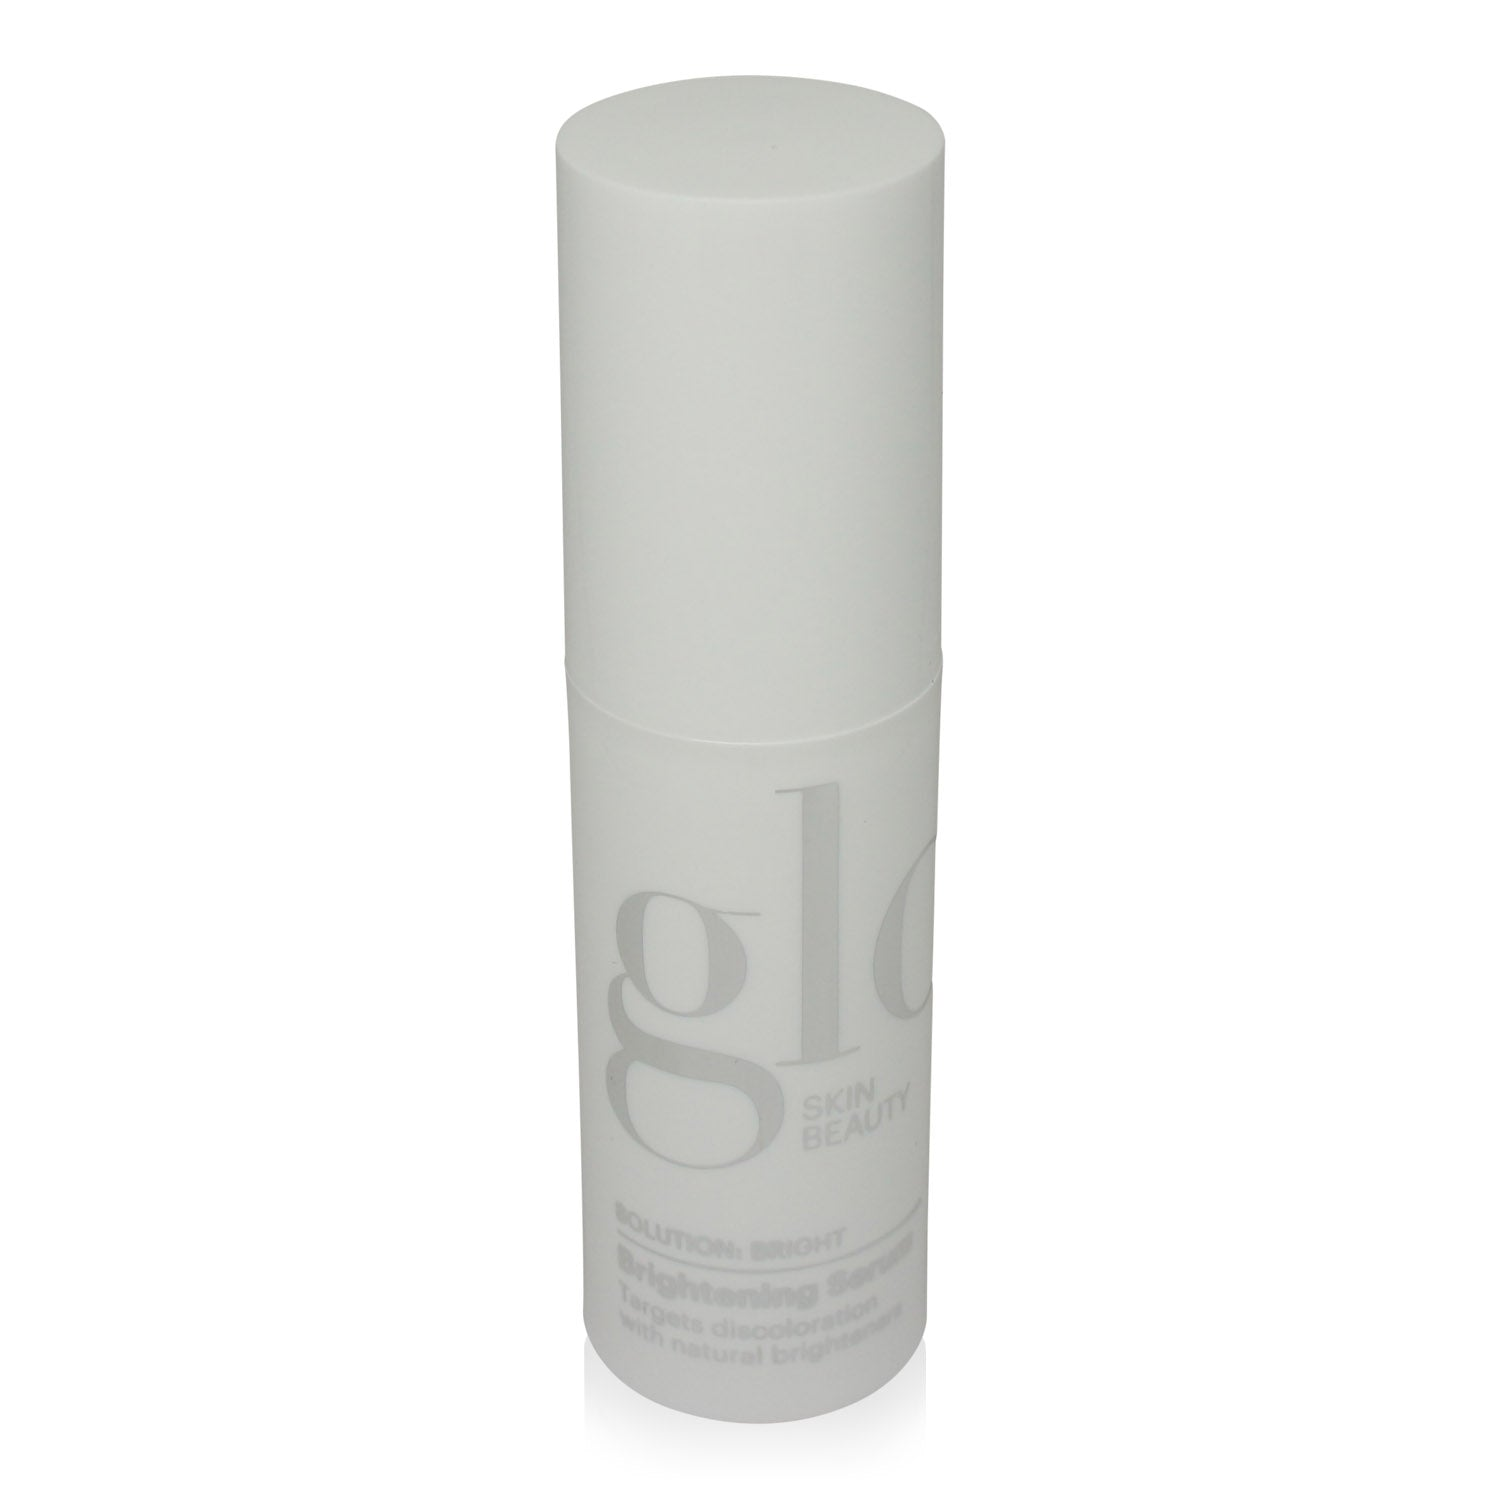 Glo Skin Beauty Brightening Serum 1 oz.